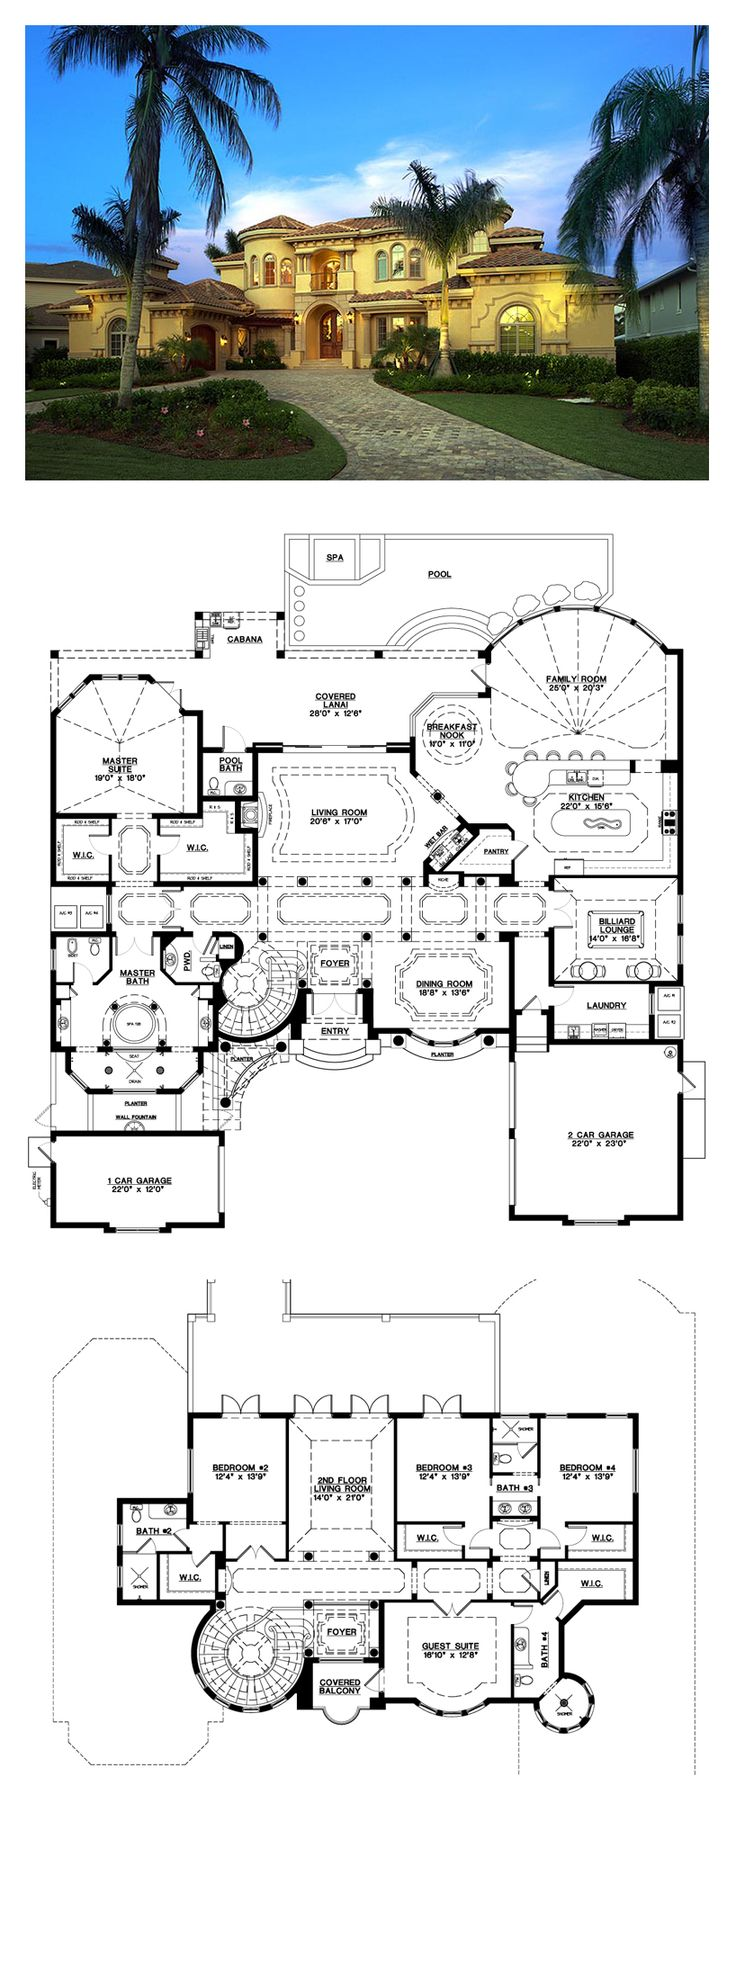 Swell 17 Best Ideas About Florida House Plans On Pinterest Florida Largest Home Design Picture Inspirations Pitcheantrous